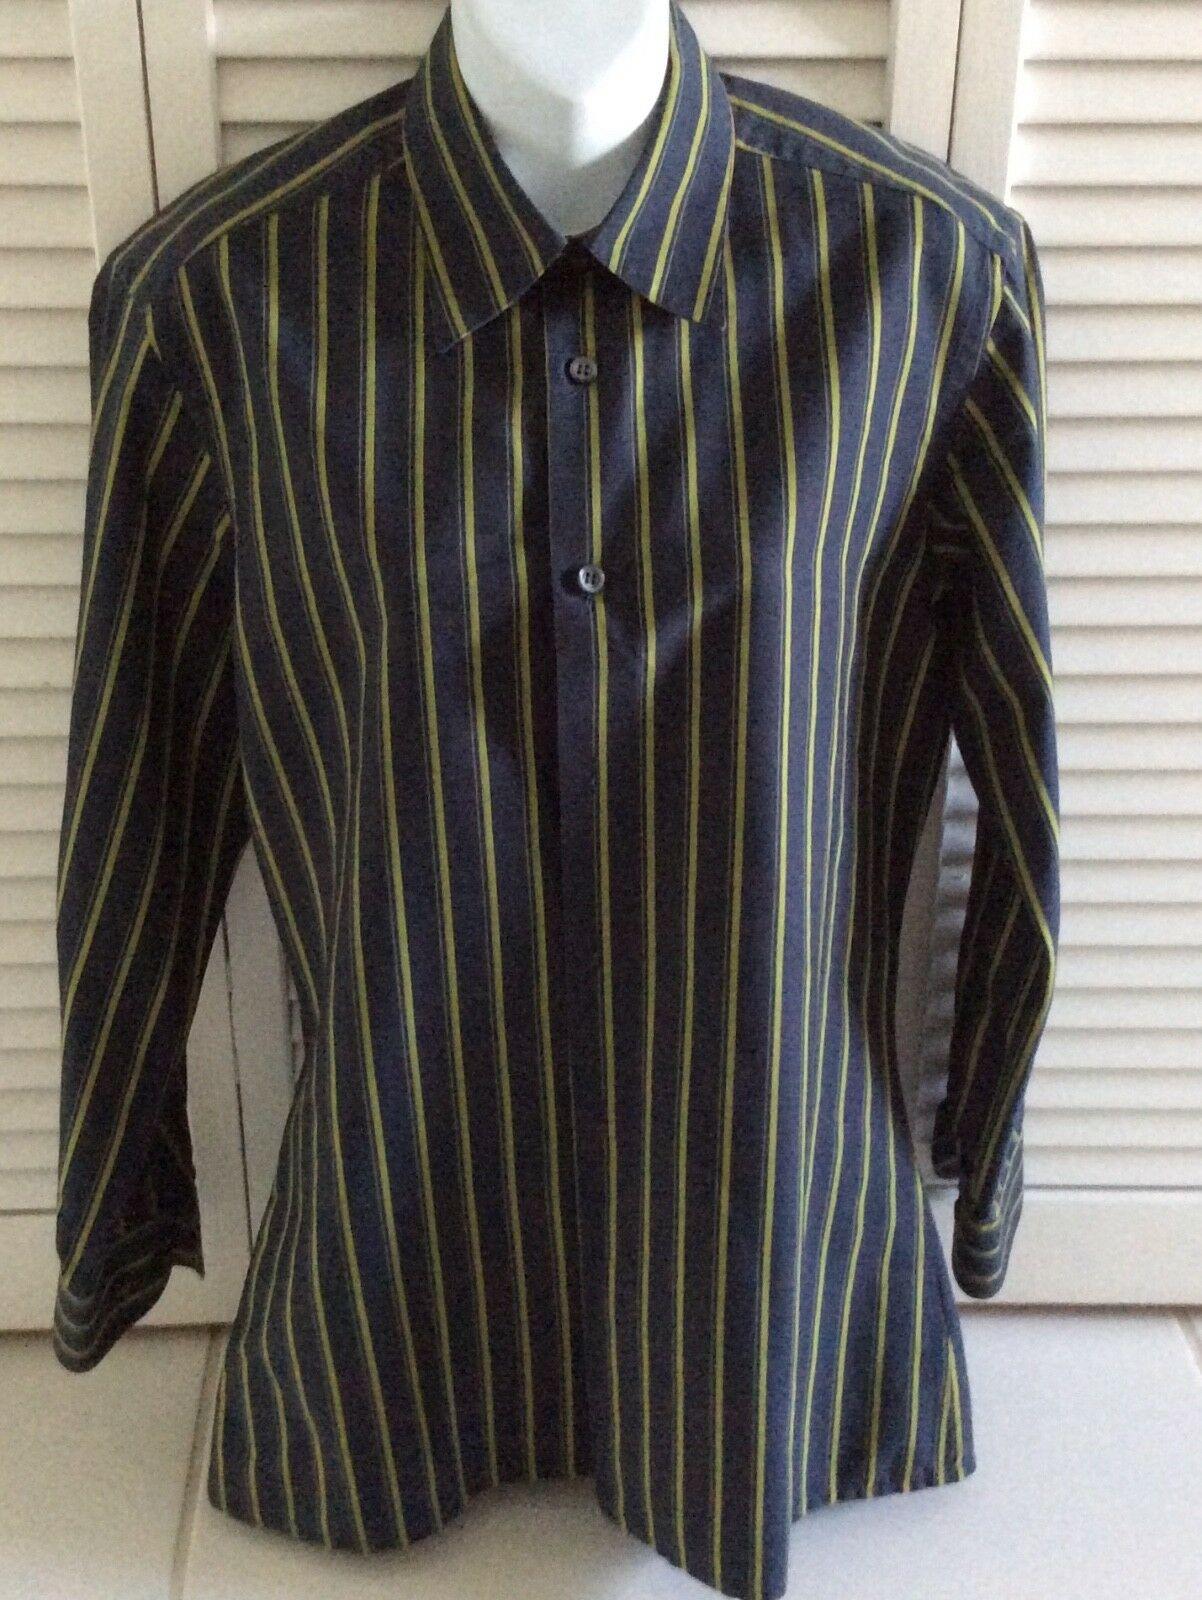 VALENTINO Roma Striped Shirt 100% Cotton Long Sleeved 39 euro Made in